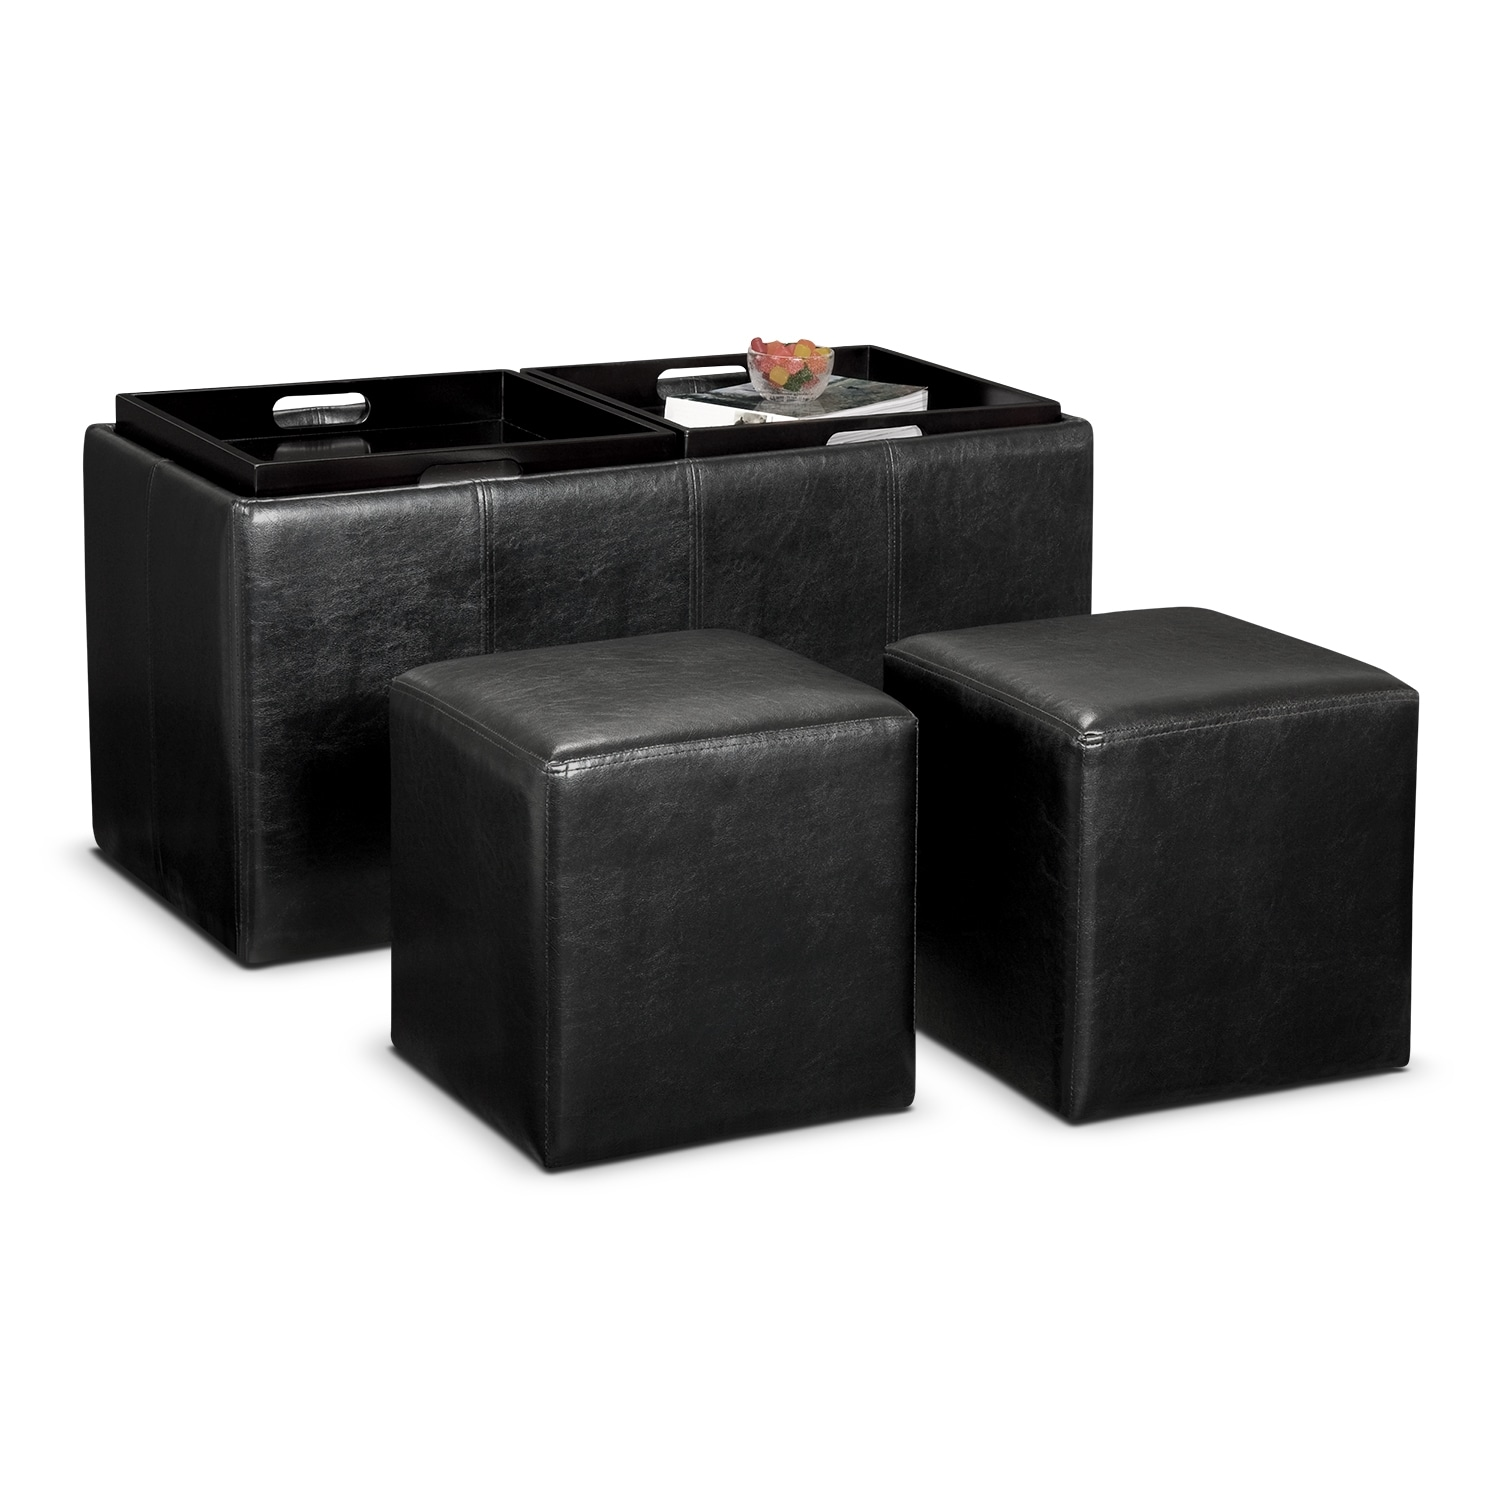 Accent and Occasional Furniture - Tiffany 3-Piece Storage Ottoman with Trays - Black